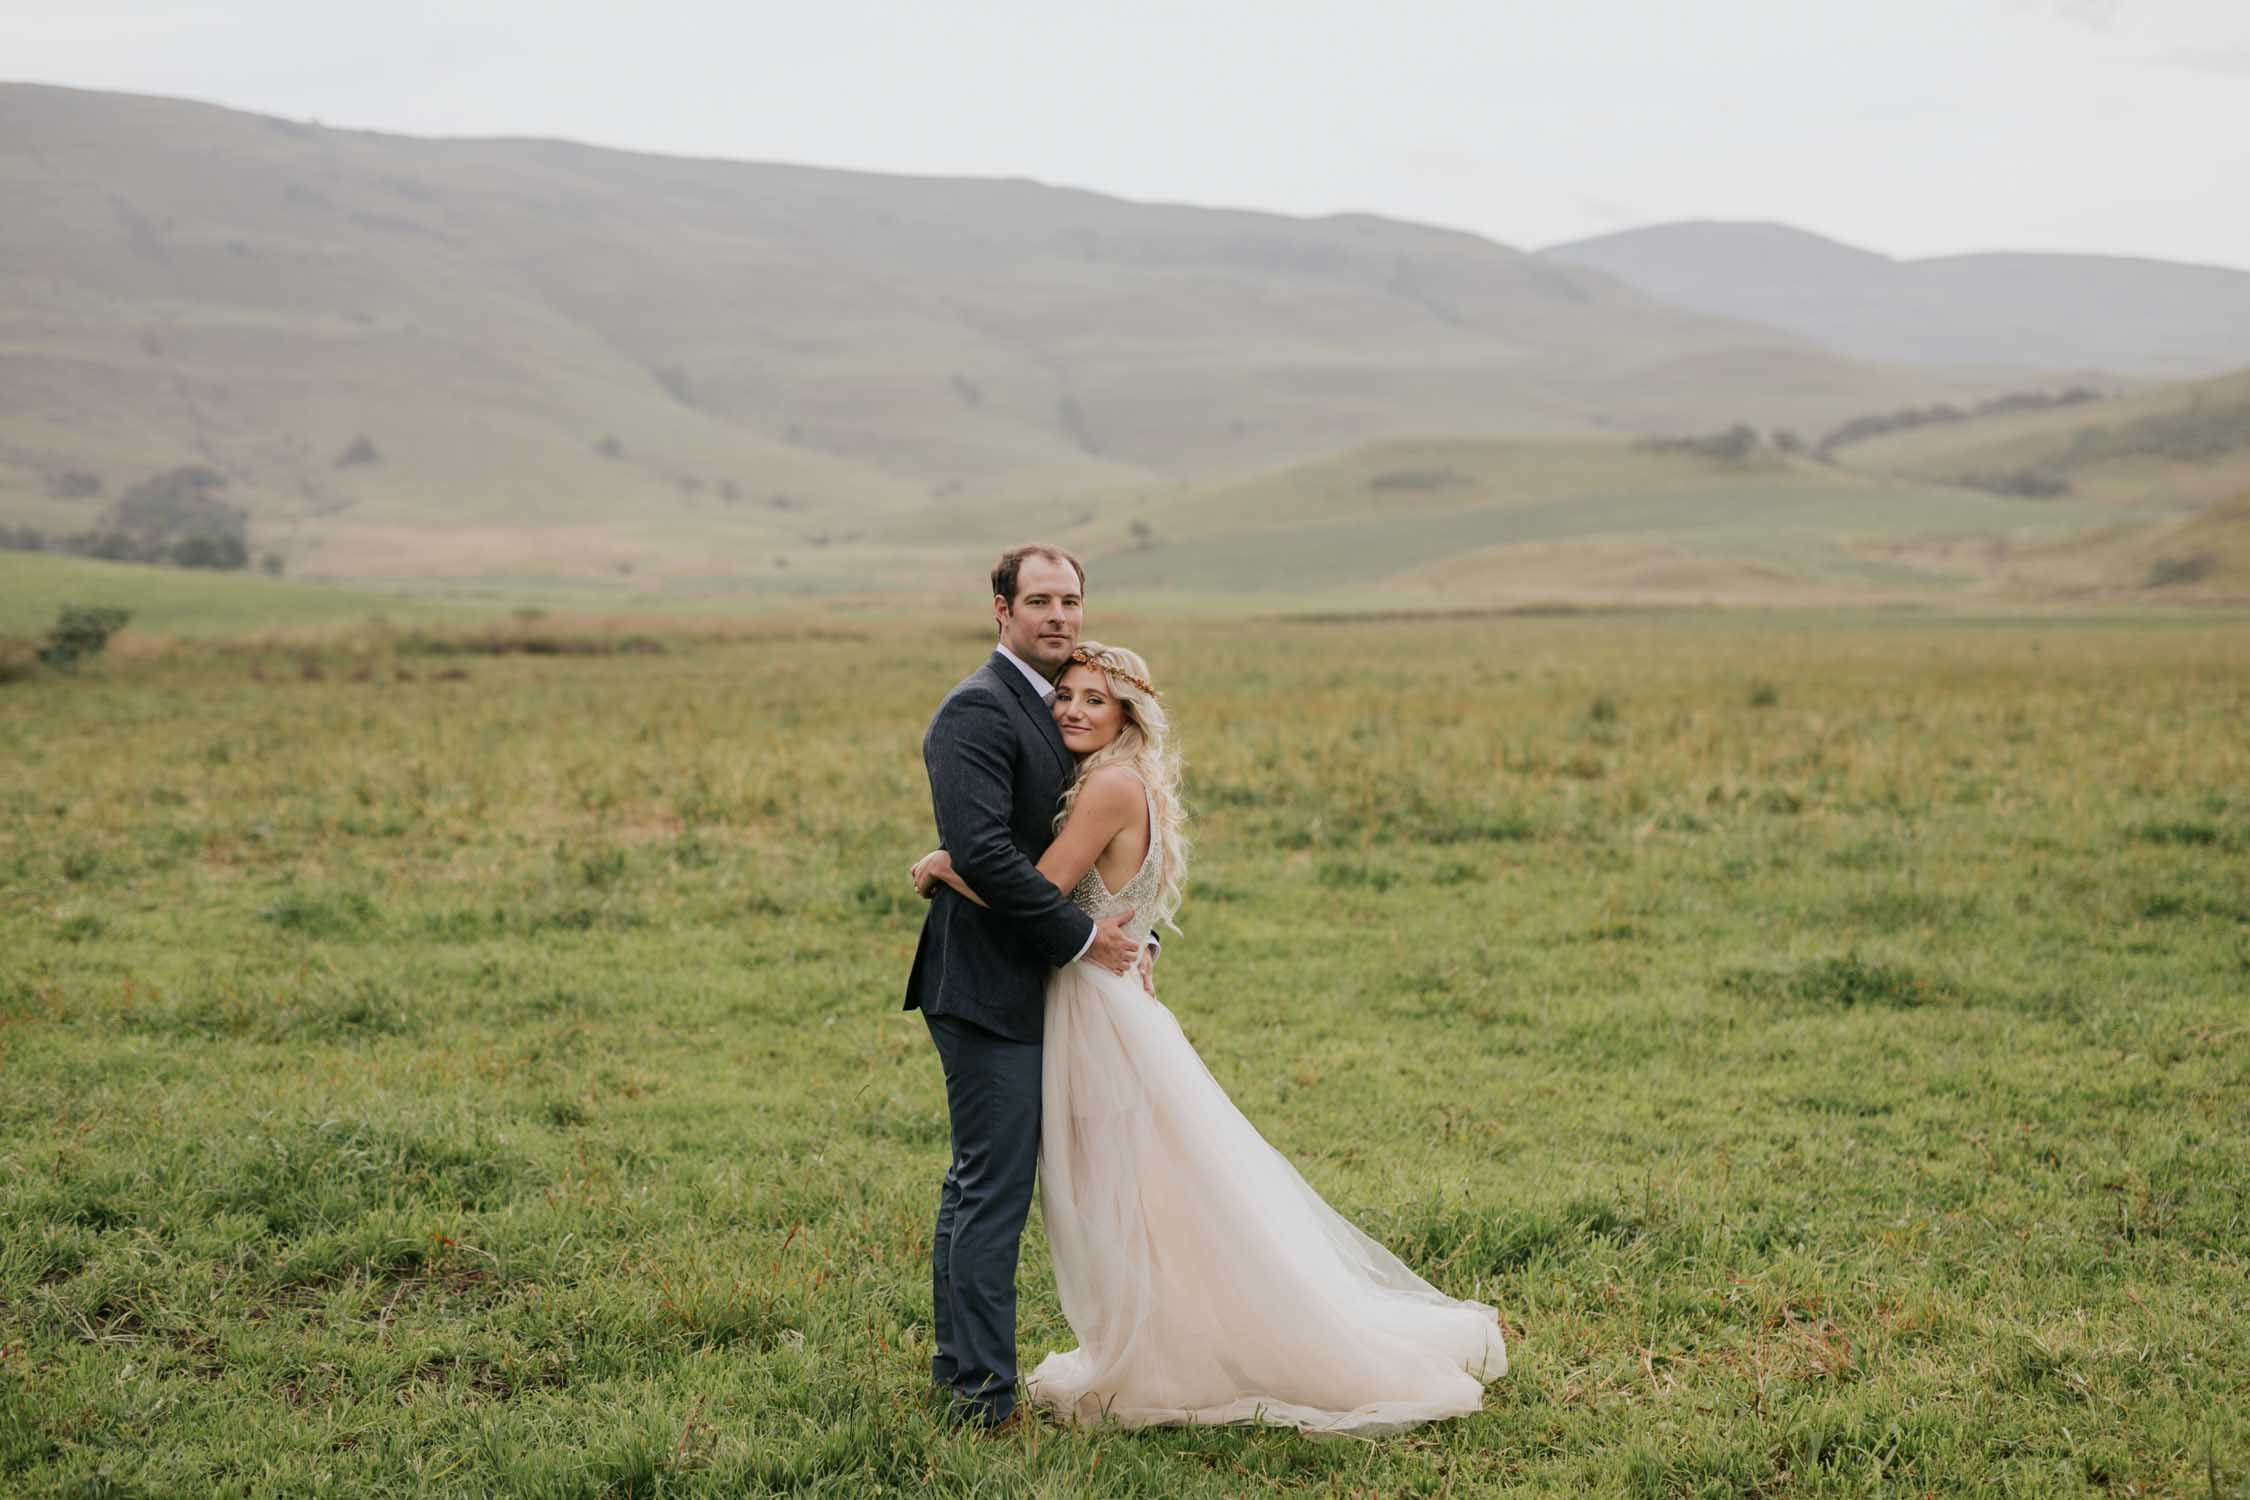 Bride and groom surrounded by green hills and fields at a farm wedding venue in the Natal Midlands.